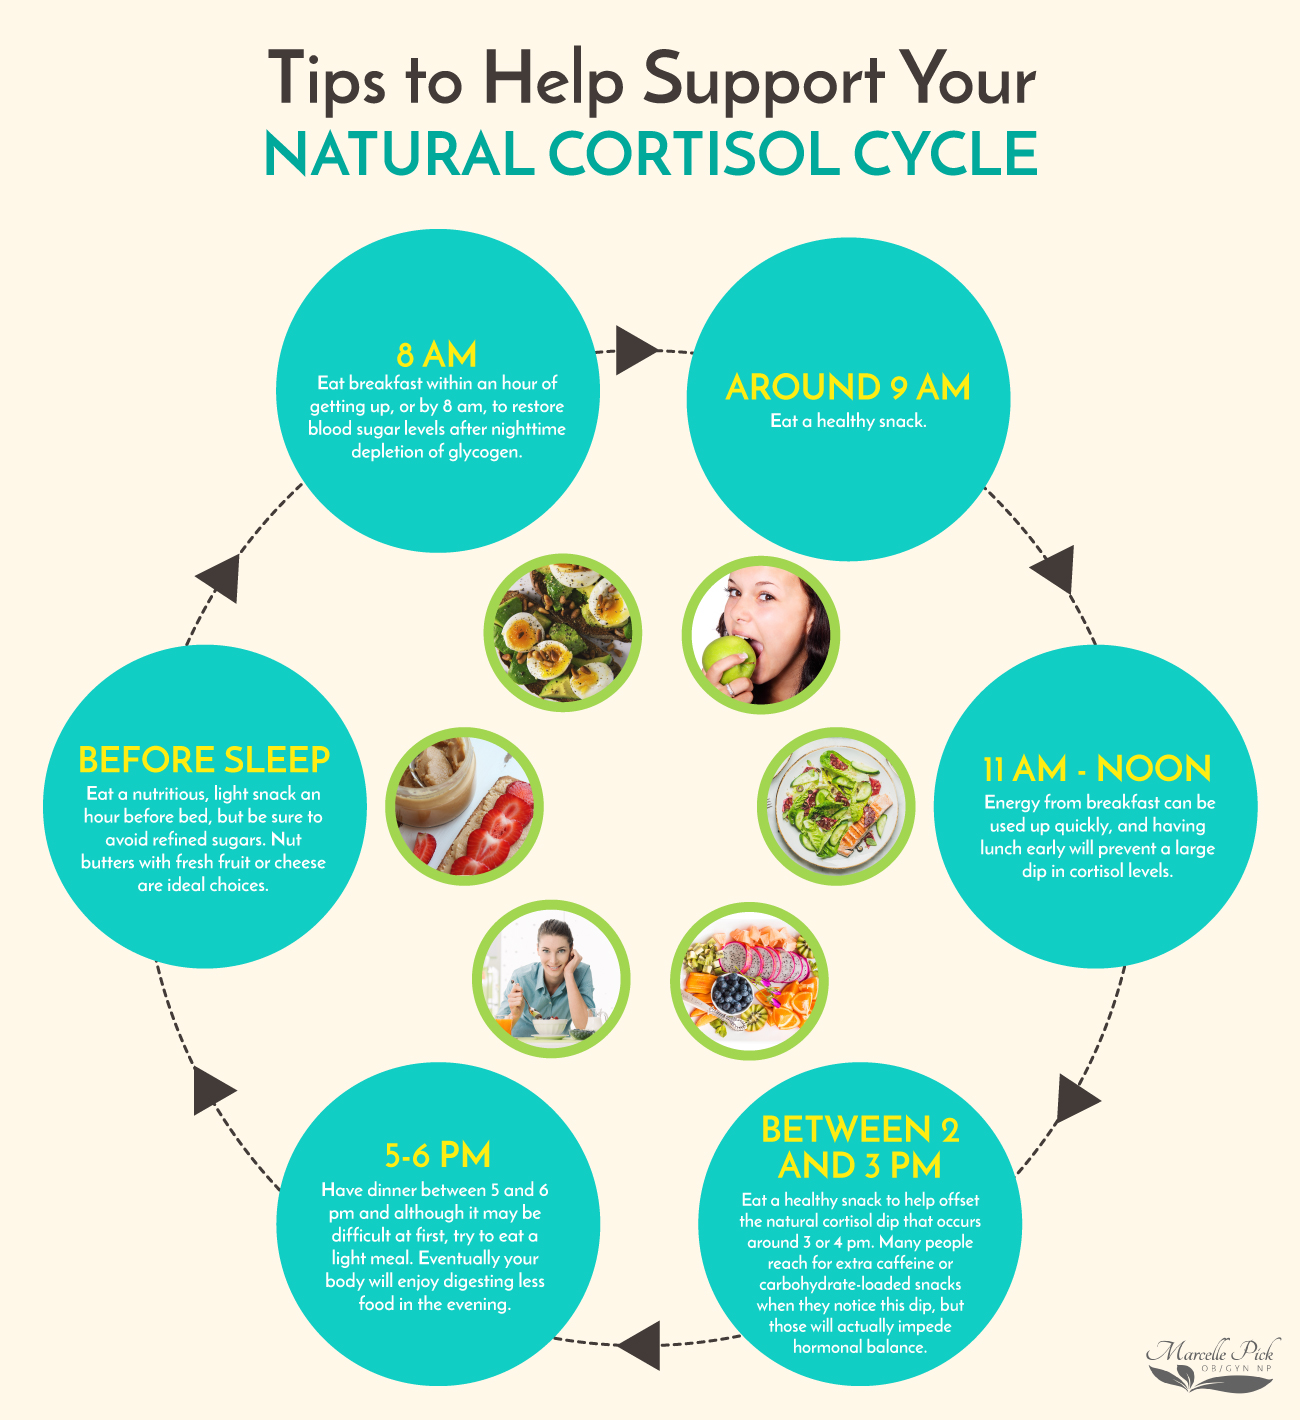 Tips to help support your natural cortisol cycle infographic